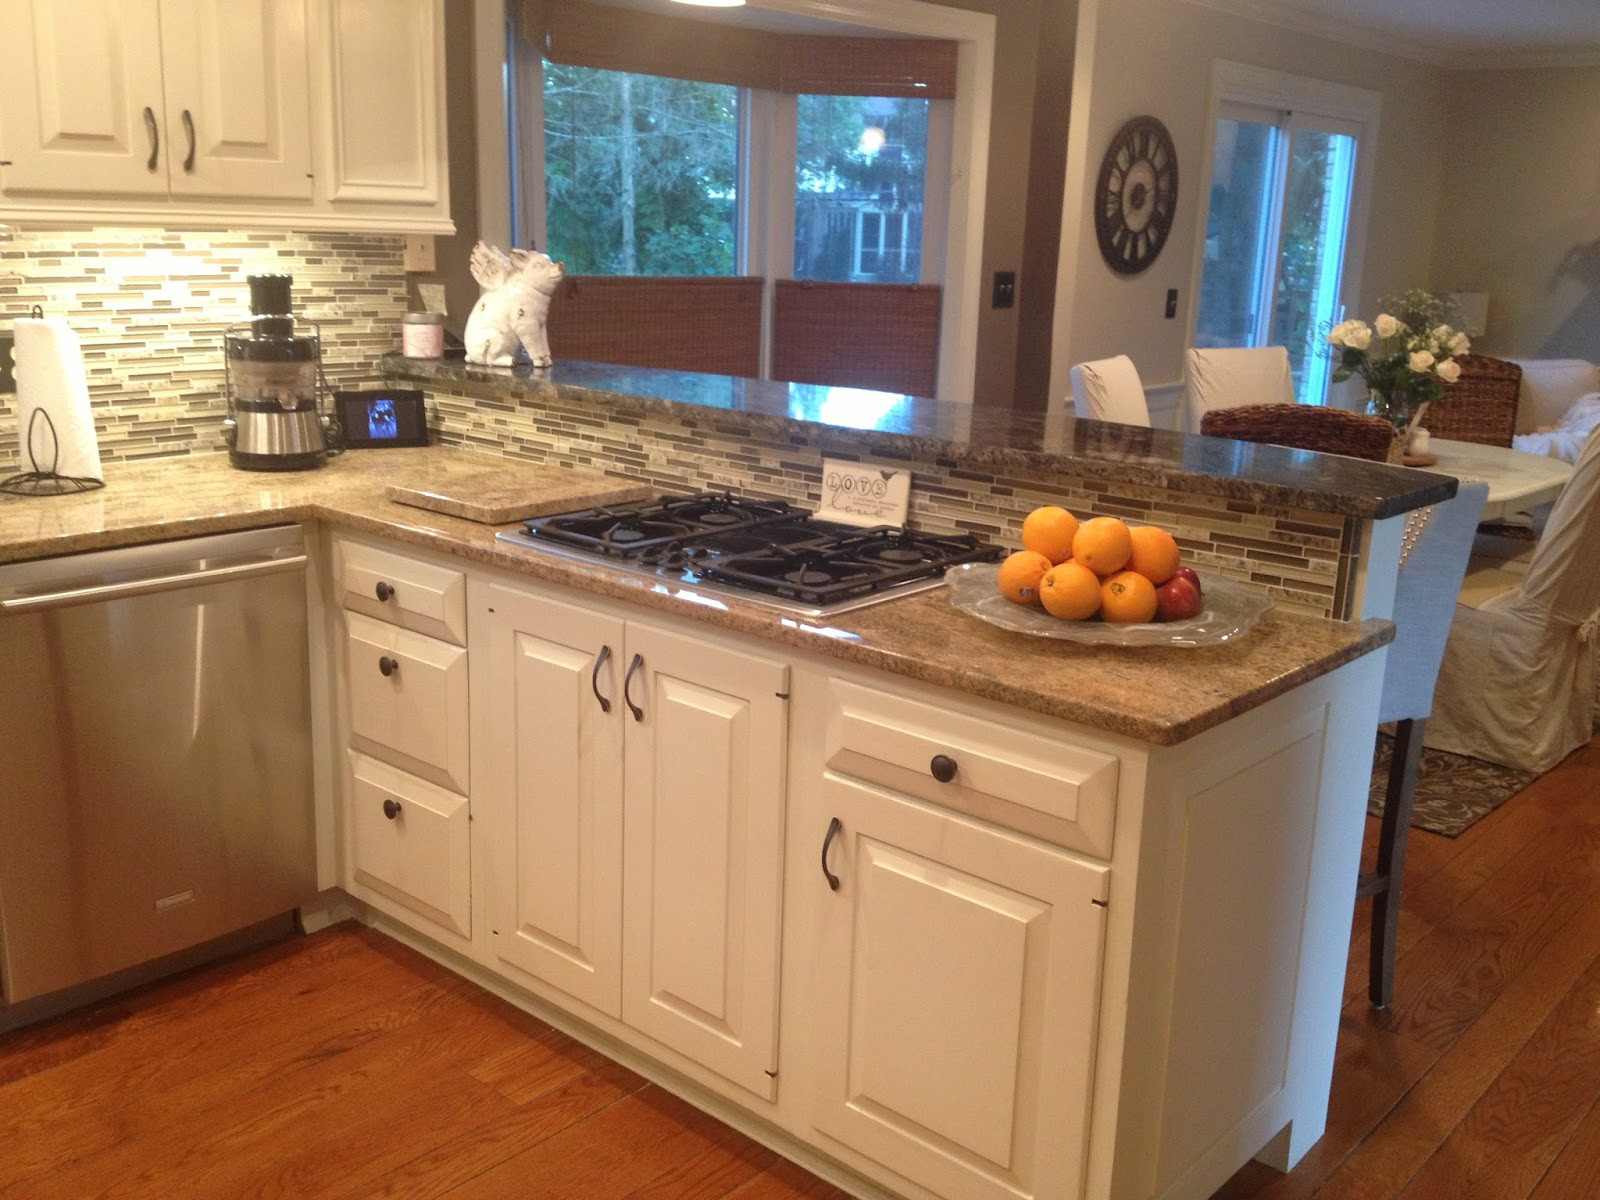 Kitchen Remodeling Budgets  Four Seasons Style The NEW kitchen remodel on a bud